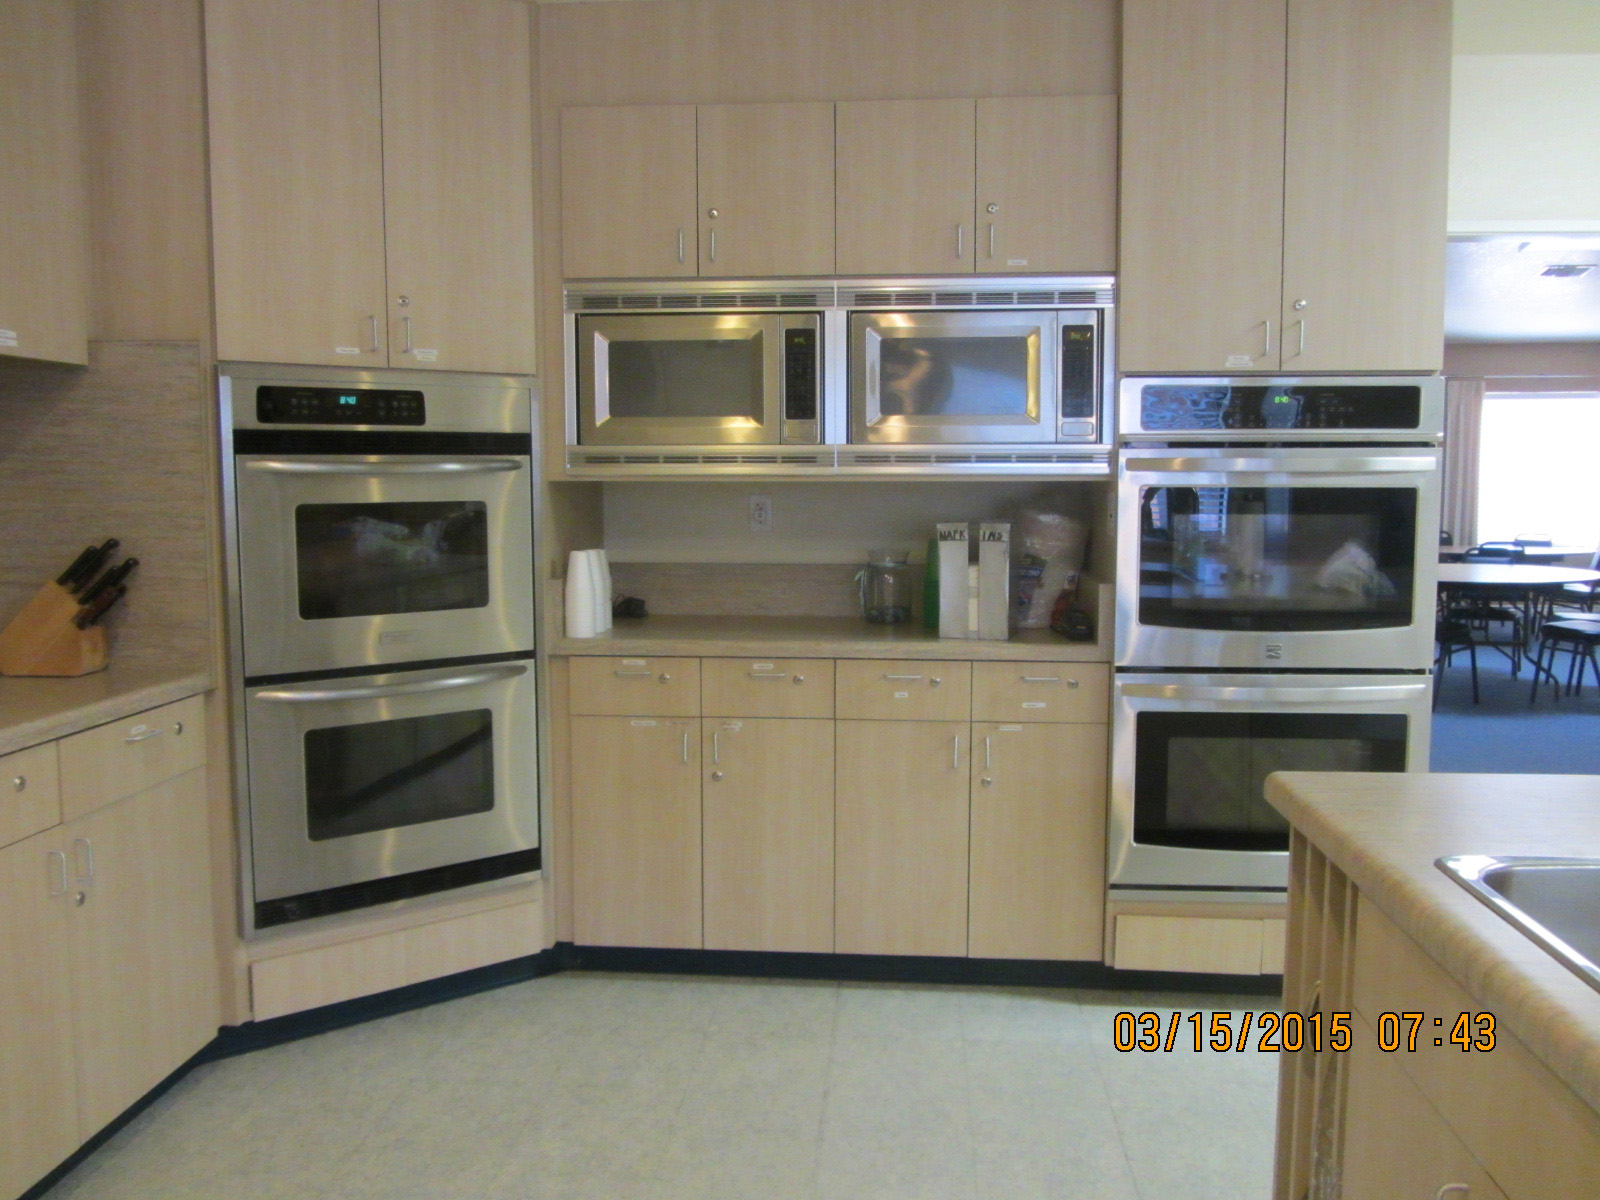 kitchen showing both industrial size ovens and cabinets